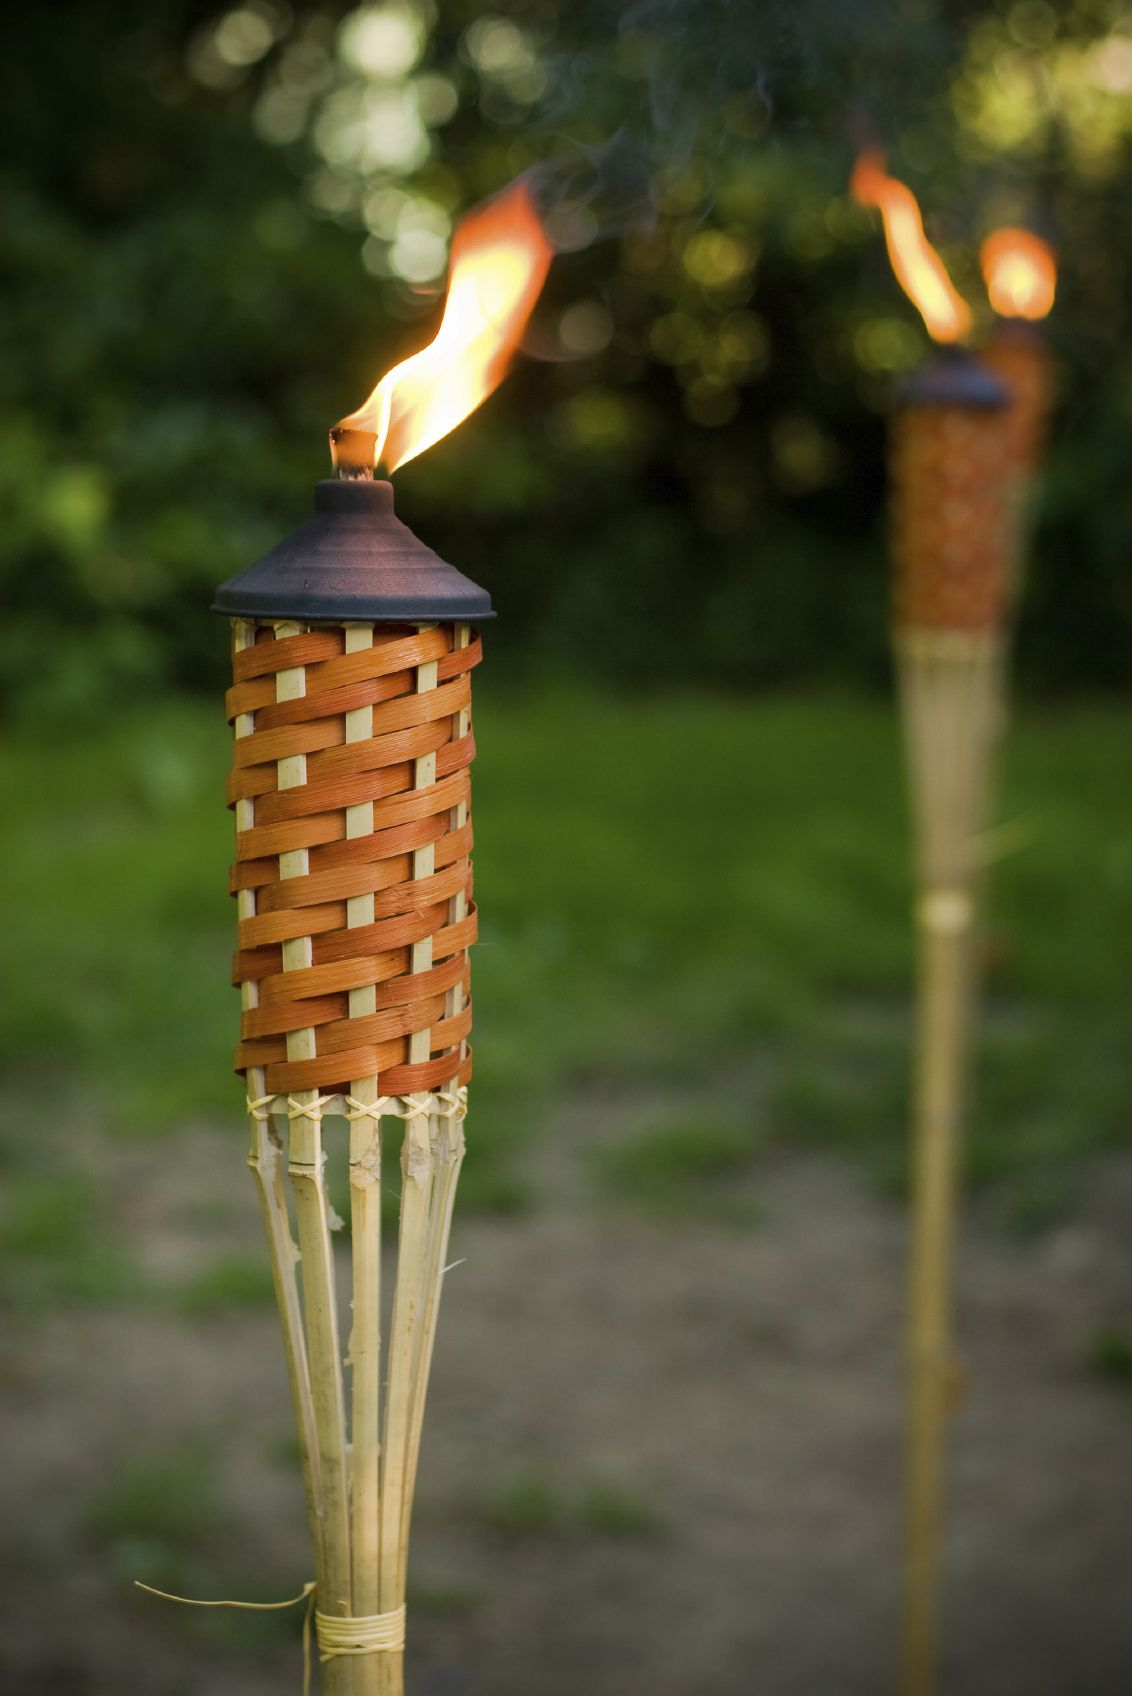 15 backyard tiki torches tiki torches torches and citronella oil torch15 more workwithnaturefo